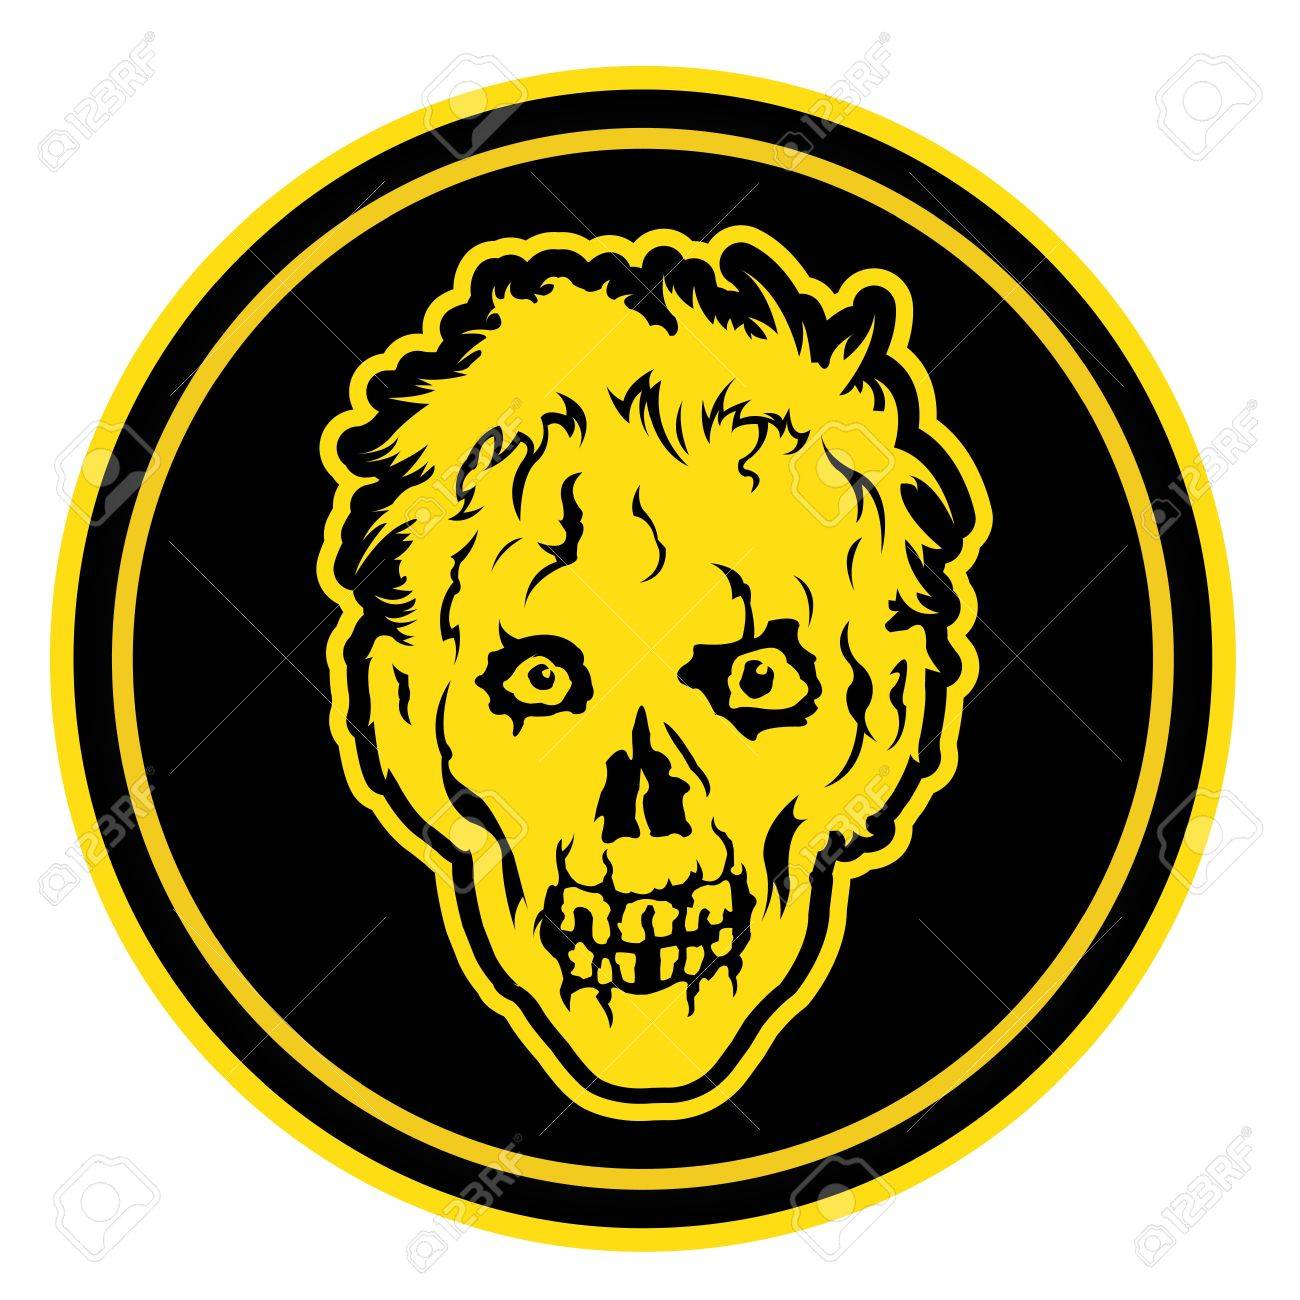 Zombie Face Badge   Seal Stock Vector - 15379595